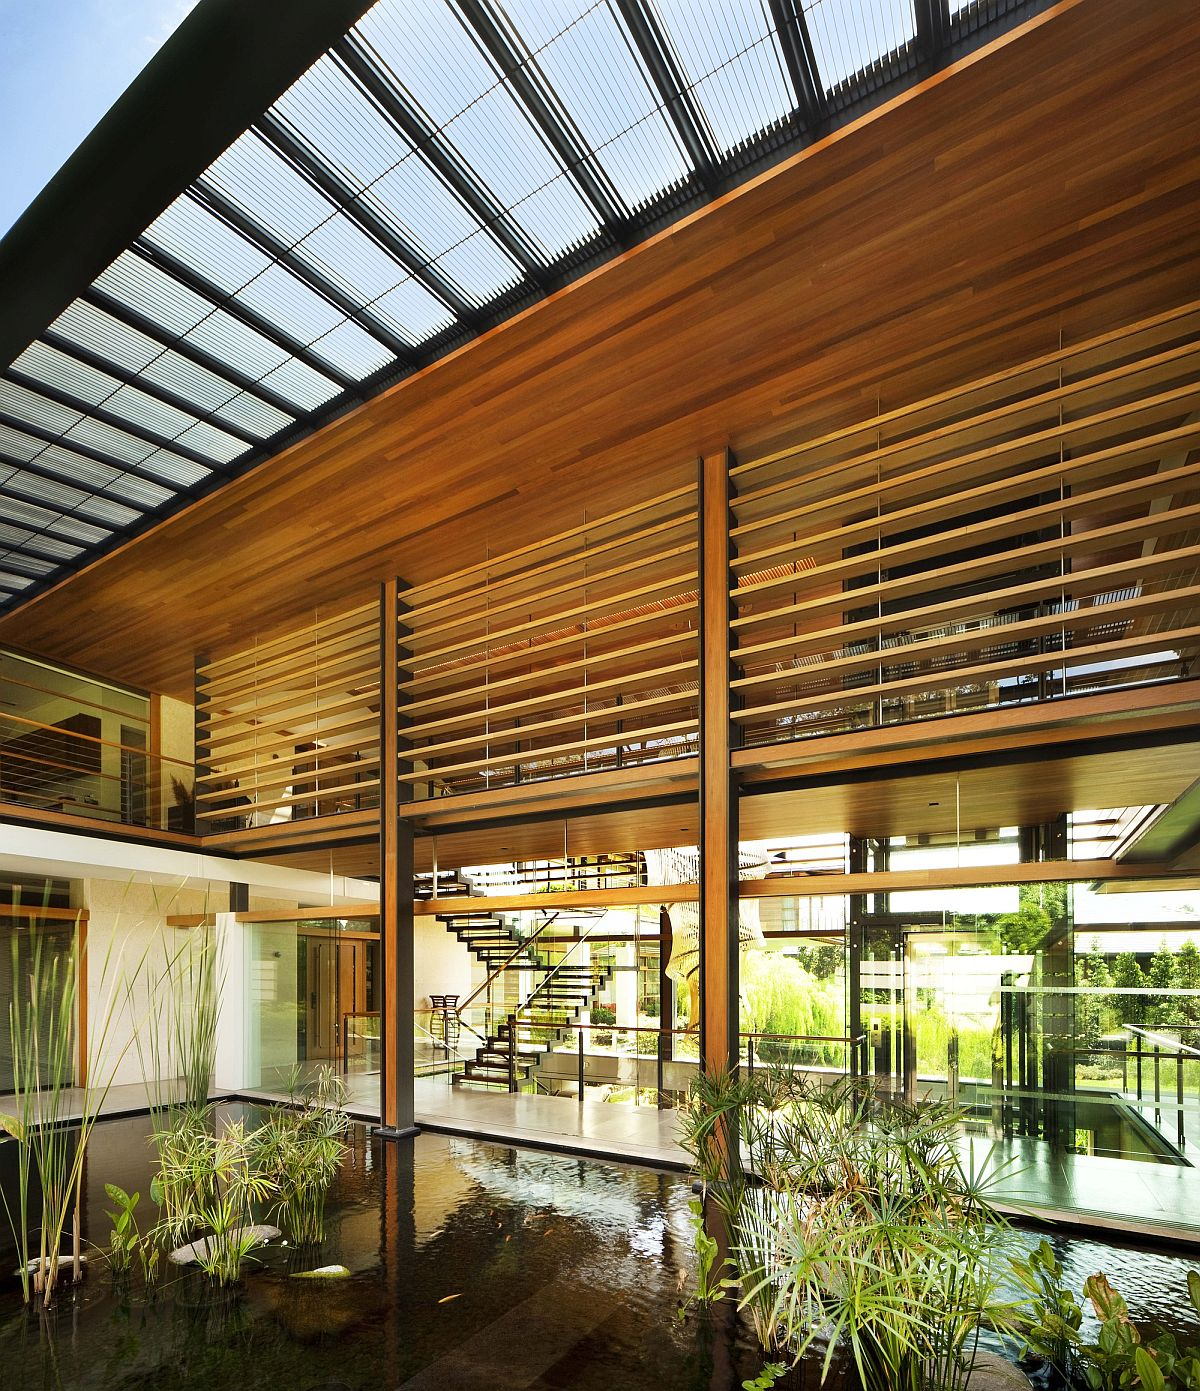 Landscaped ponds and courtyards combine nature with modernity inside the home